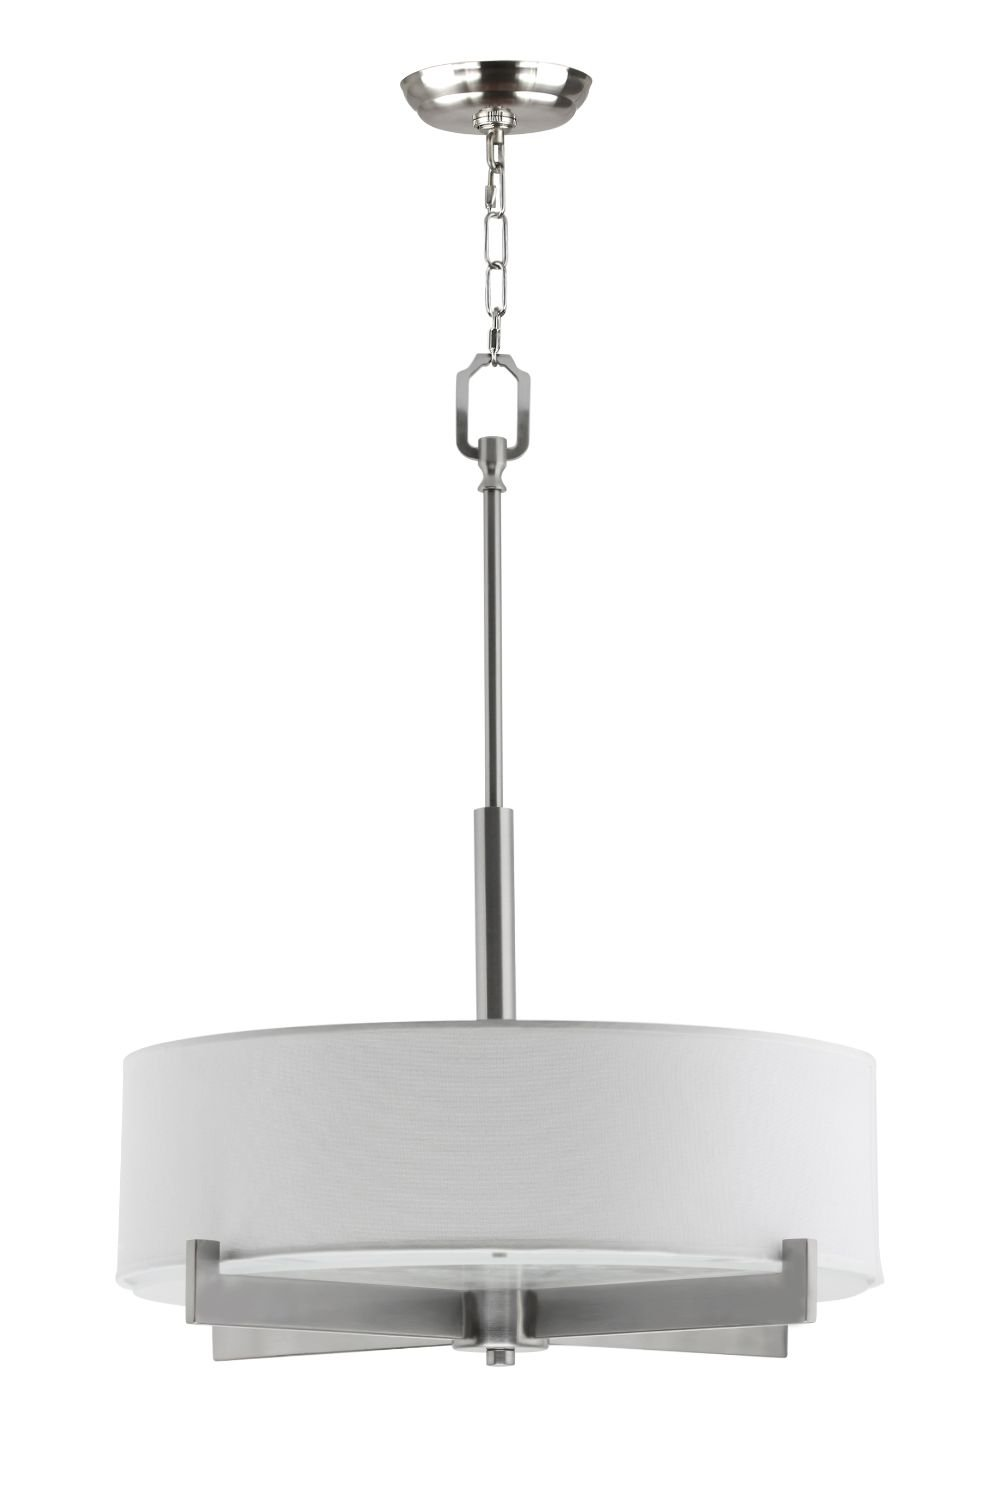 Allegro Drum Pendant Ceiling Lamp - 3 Light Fixture Brushed Nickel White Fabric Shade Frosted Glass - 84 Inch Max Height Linea di Liara LL-C134-BN by Linea di Liara